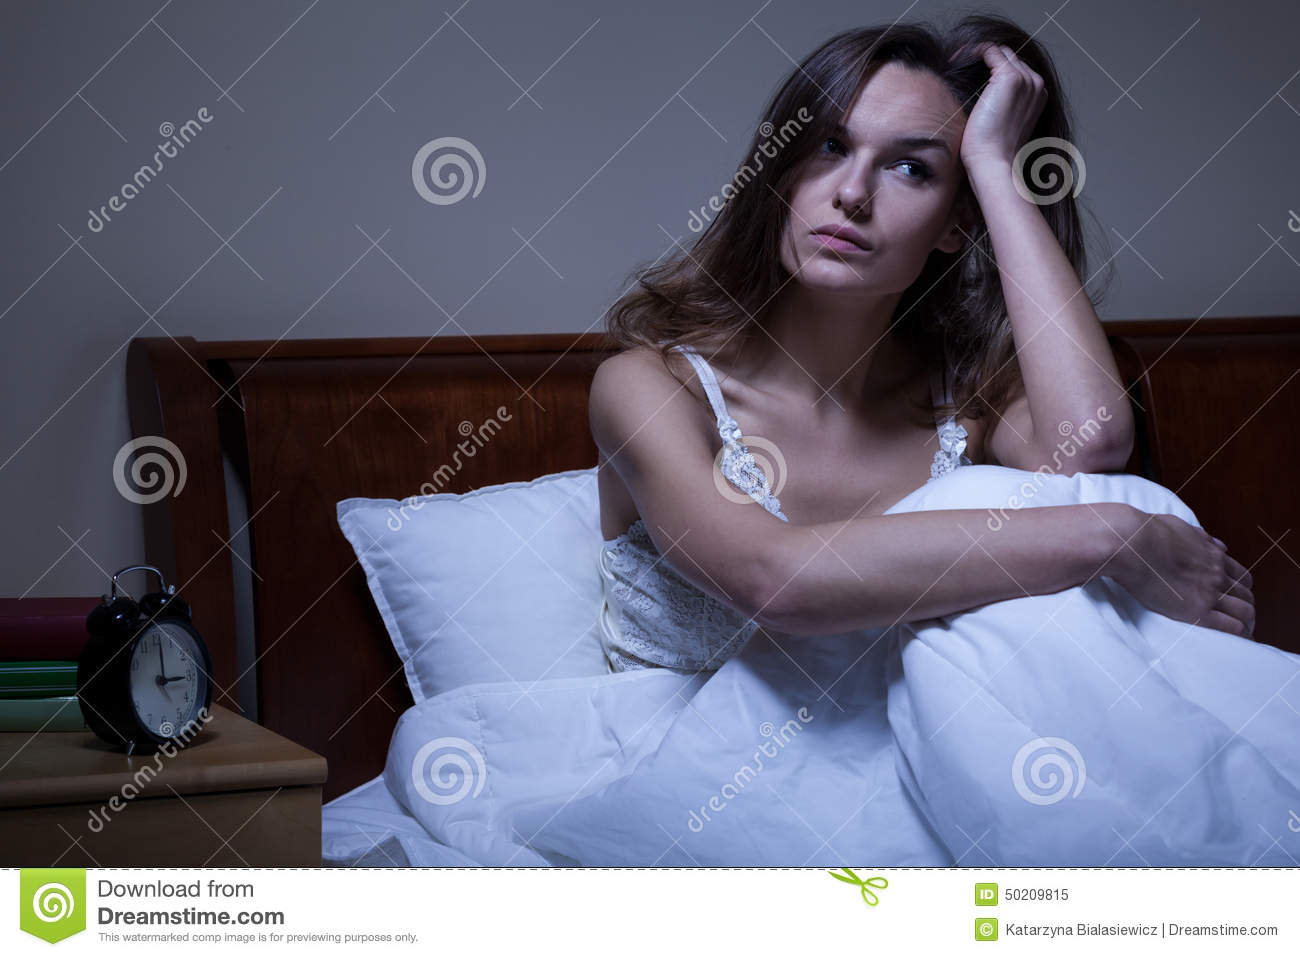 Problems with sleeping